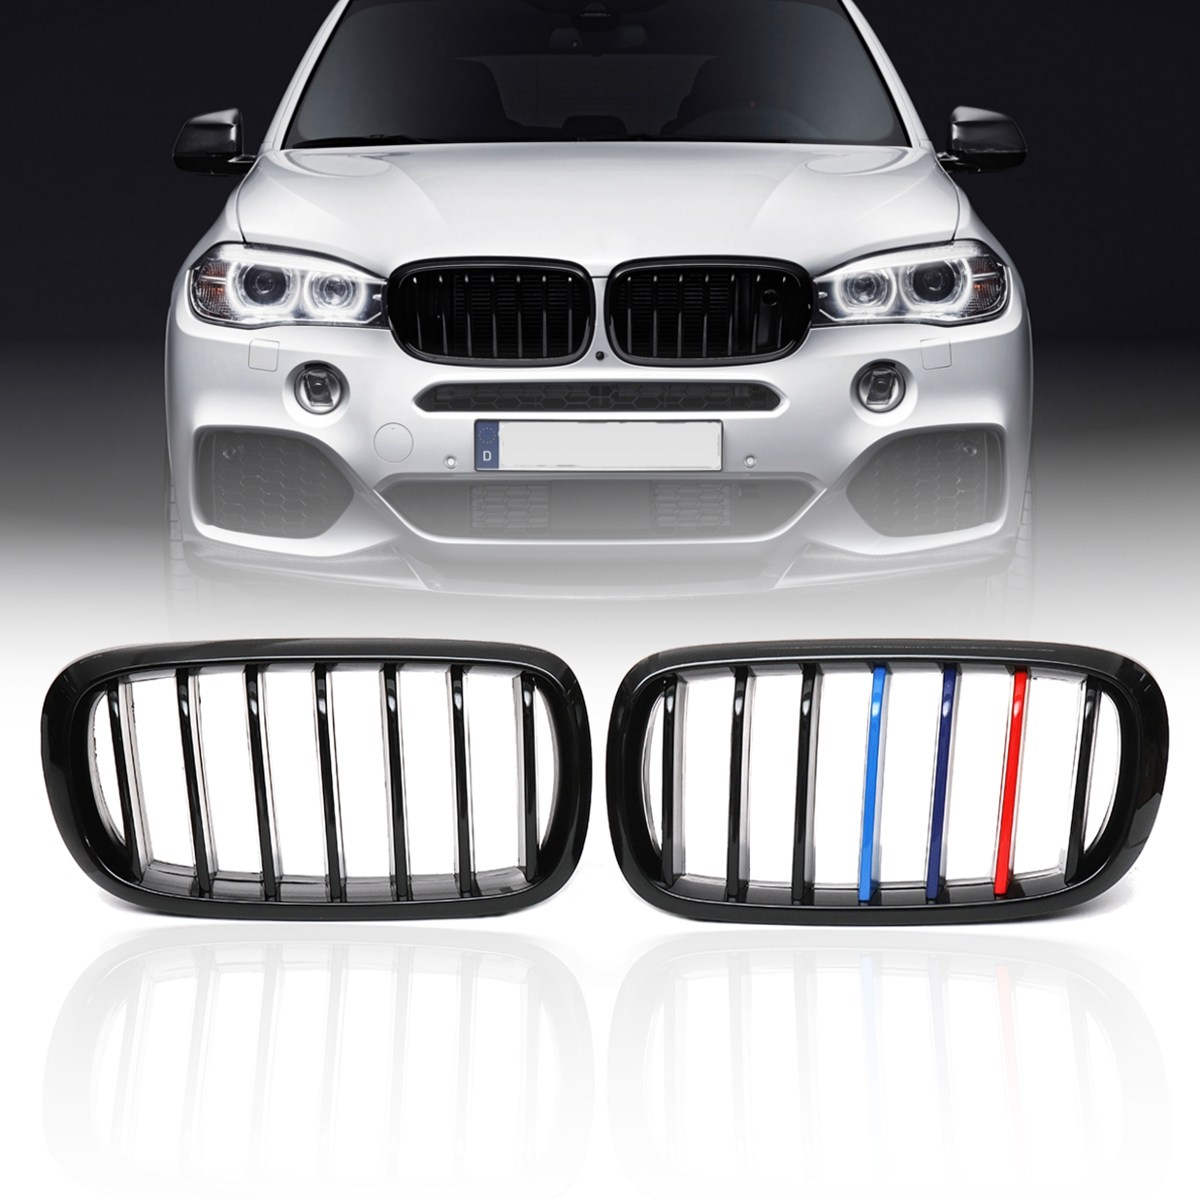 Pair Gloss Black M-Color Front Kidney Grille Grill For BMW X5 F15 X6 F16 X5M F85 X6M F86 2014 2015 2016 2018 цена 2017